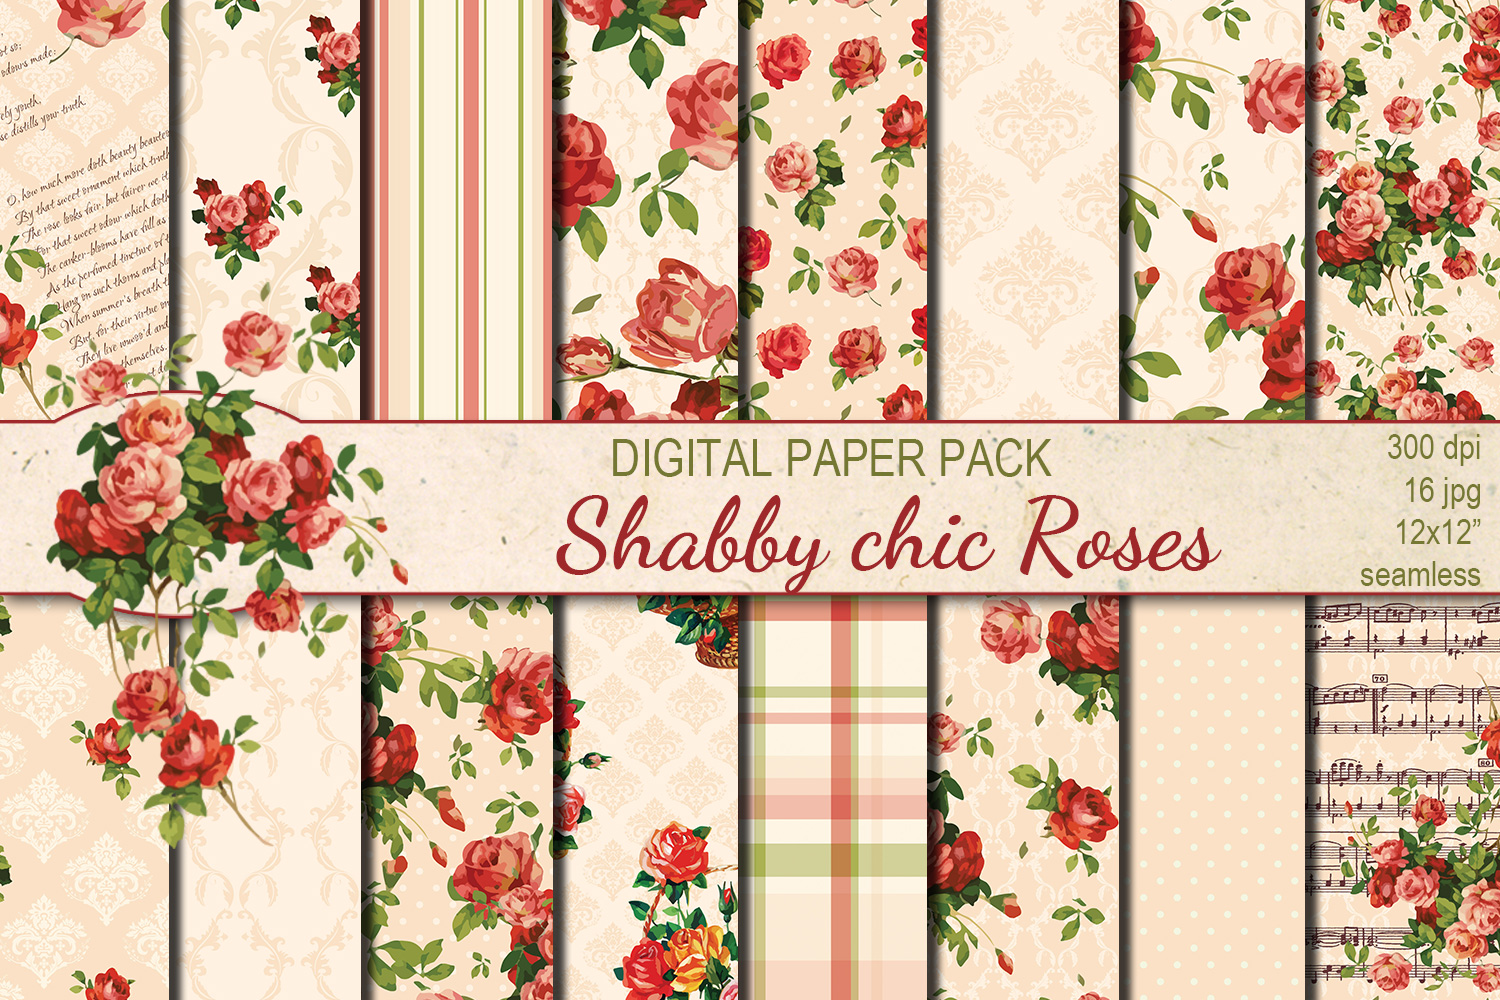 Shabby chic pink roses seamless digital paper pack example image 1